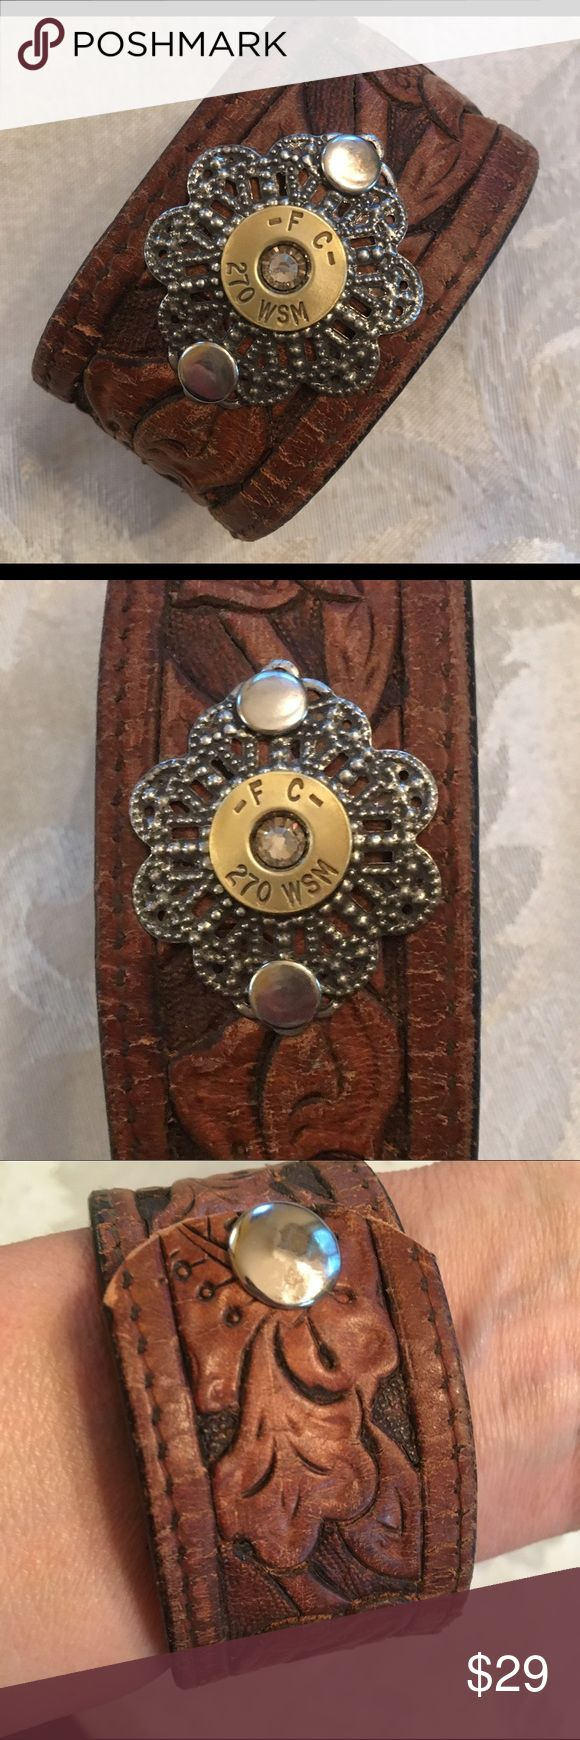 Leather cuff with bullet casing Vintage leather embellished with Federal 270 genuine fired bullet casing Jewelry Bracelets